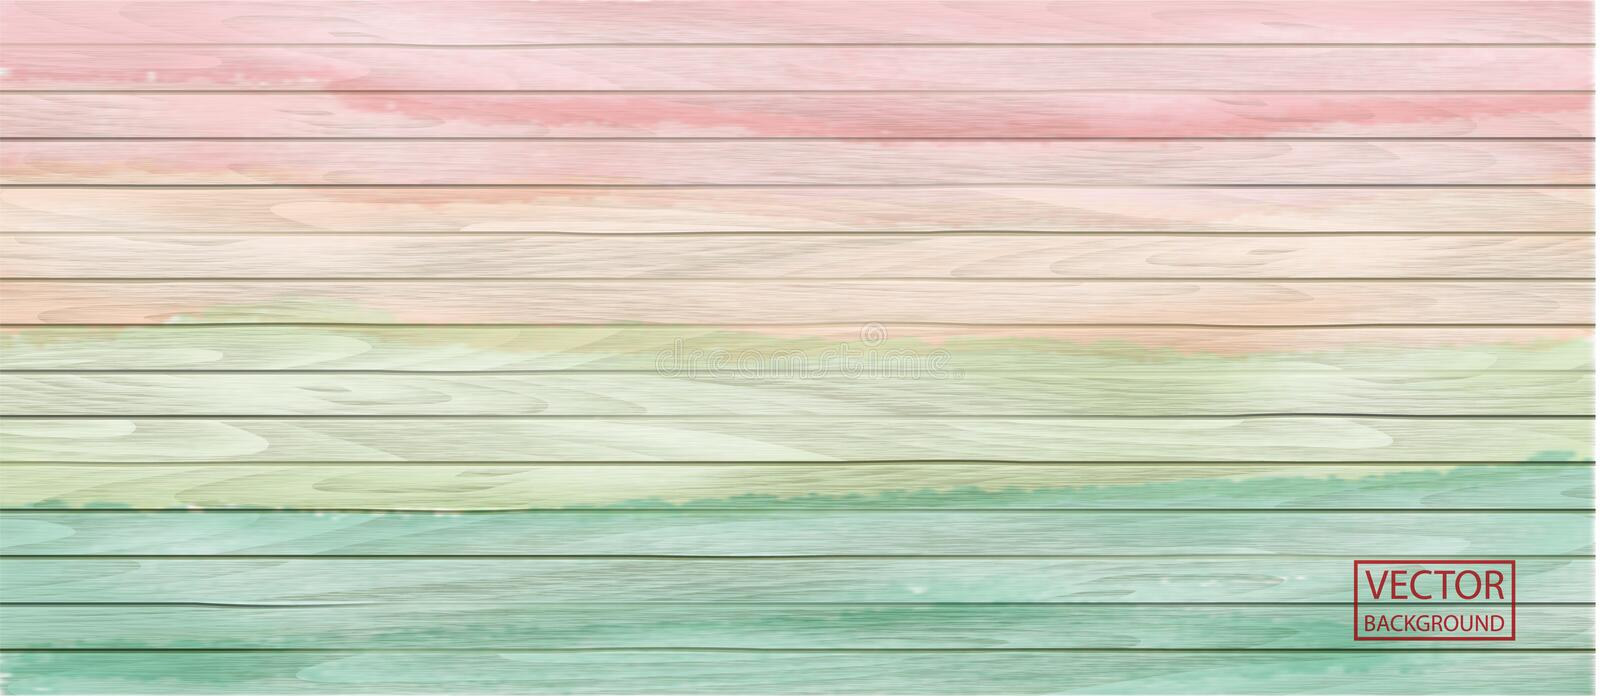 Colorful vector wood header in watercolor style on rainbow background. Background, horizontal banner. royalty free stock photo